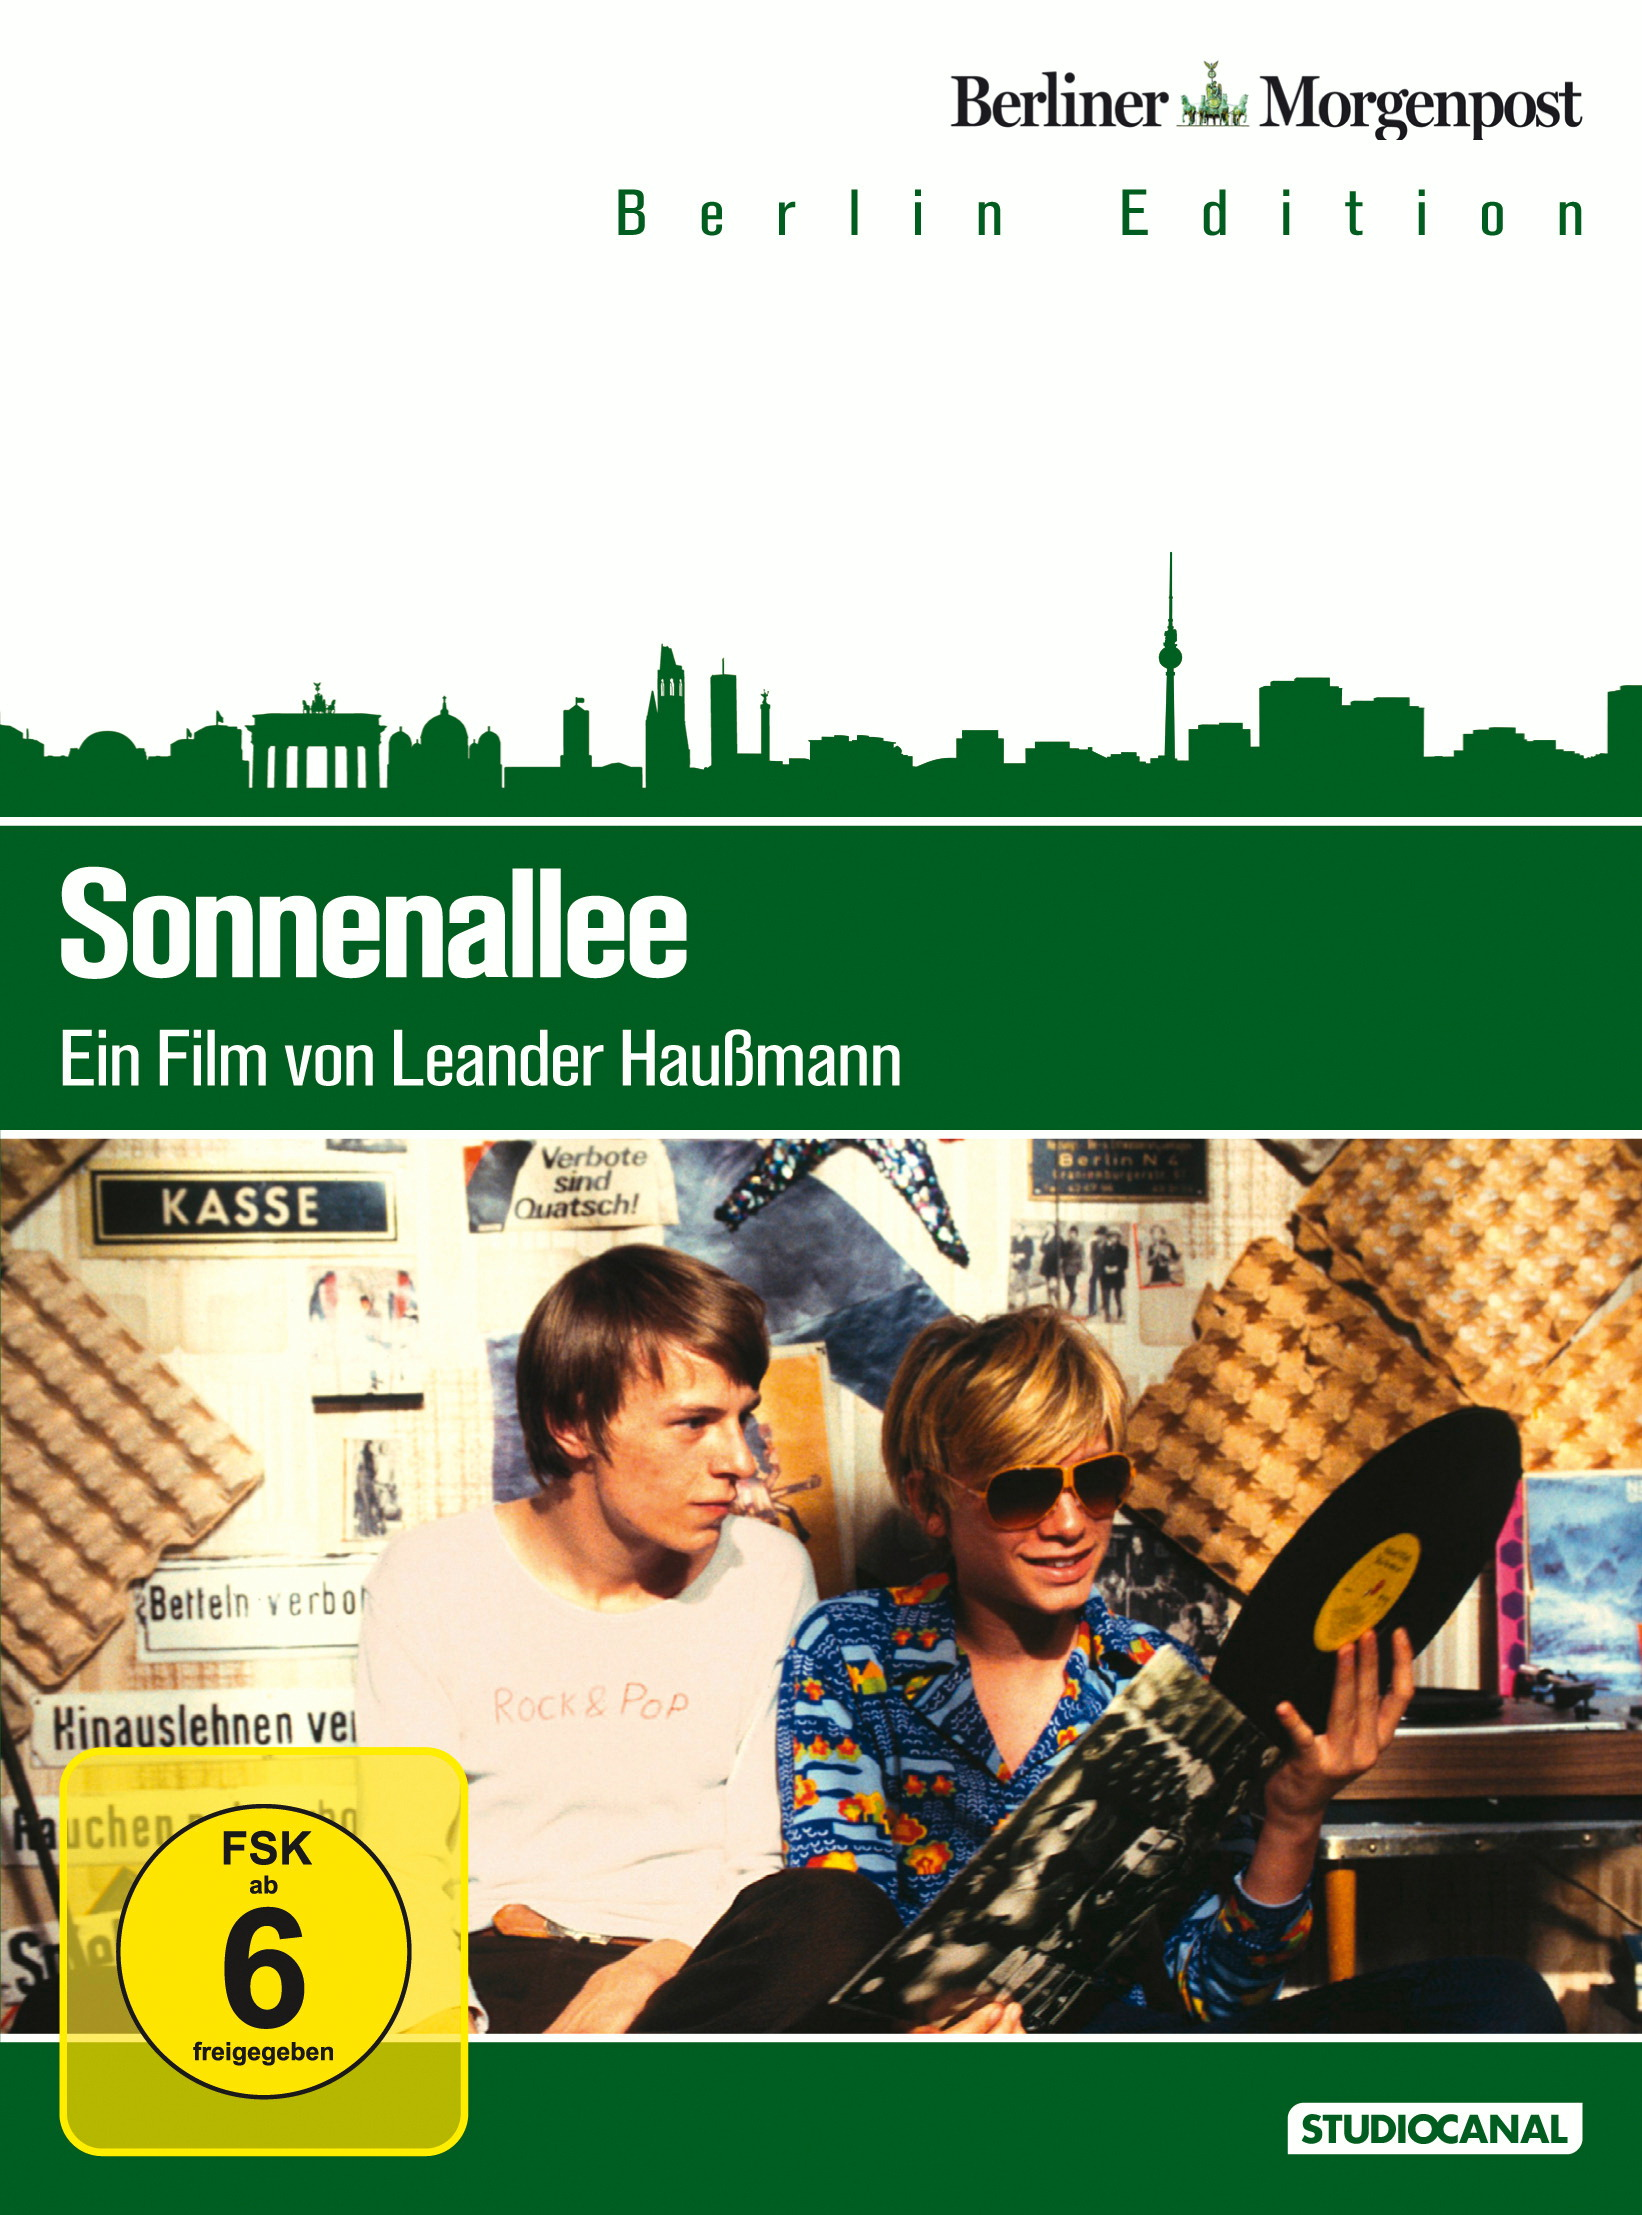 Sonnenallee (Berlin Edition) Poster